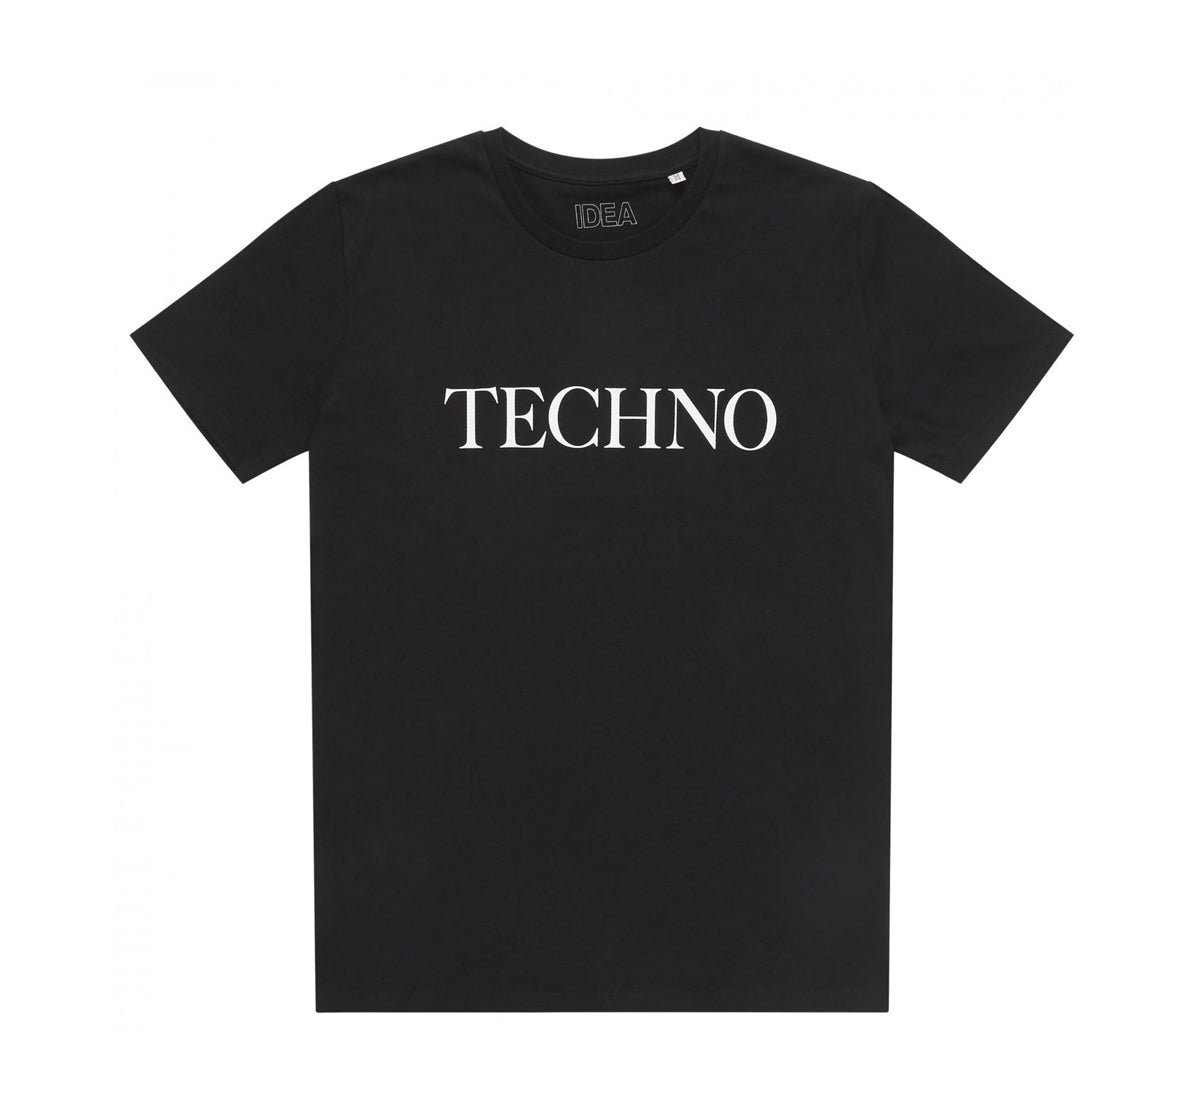 Idea Techno T-Shirt